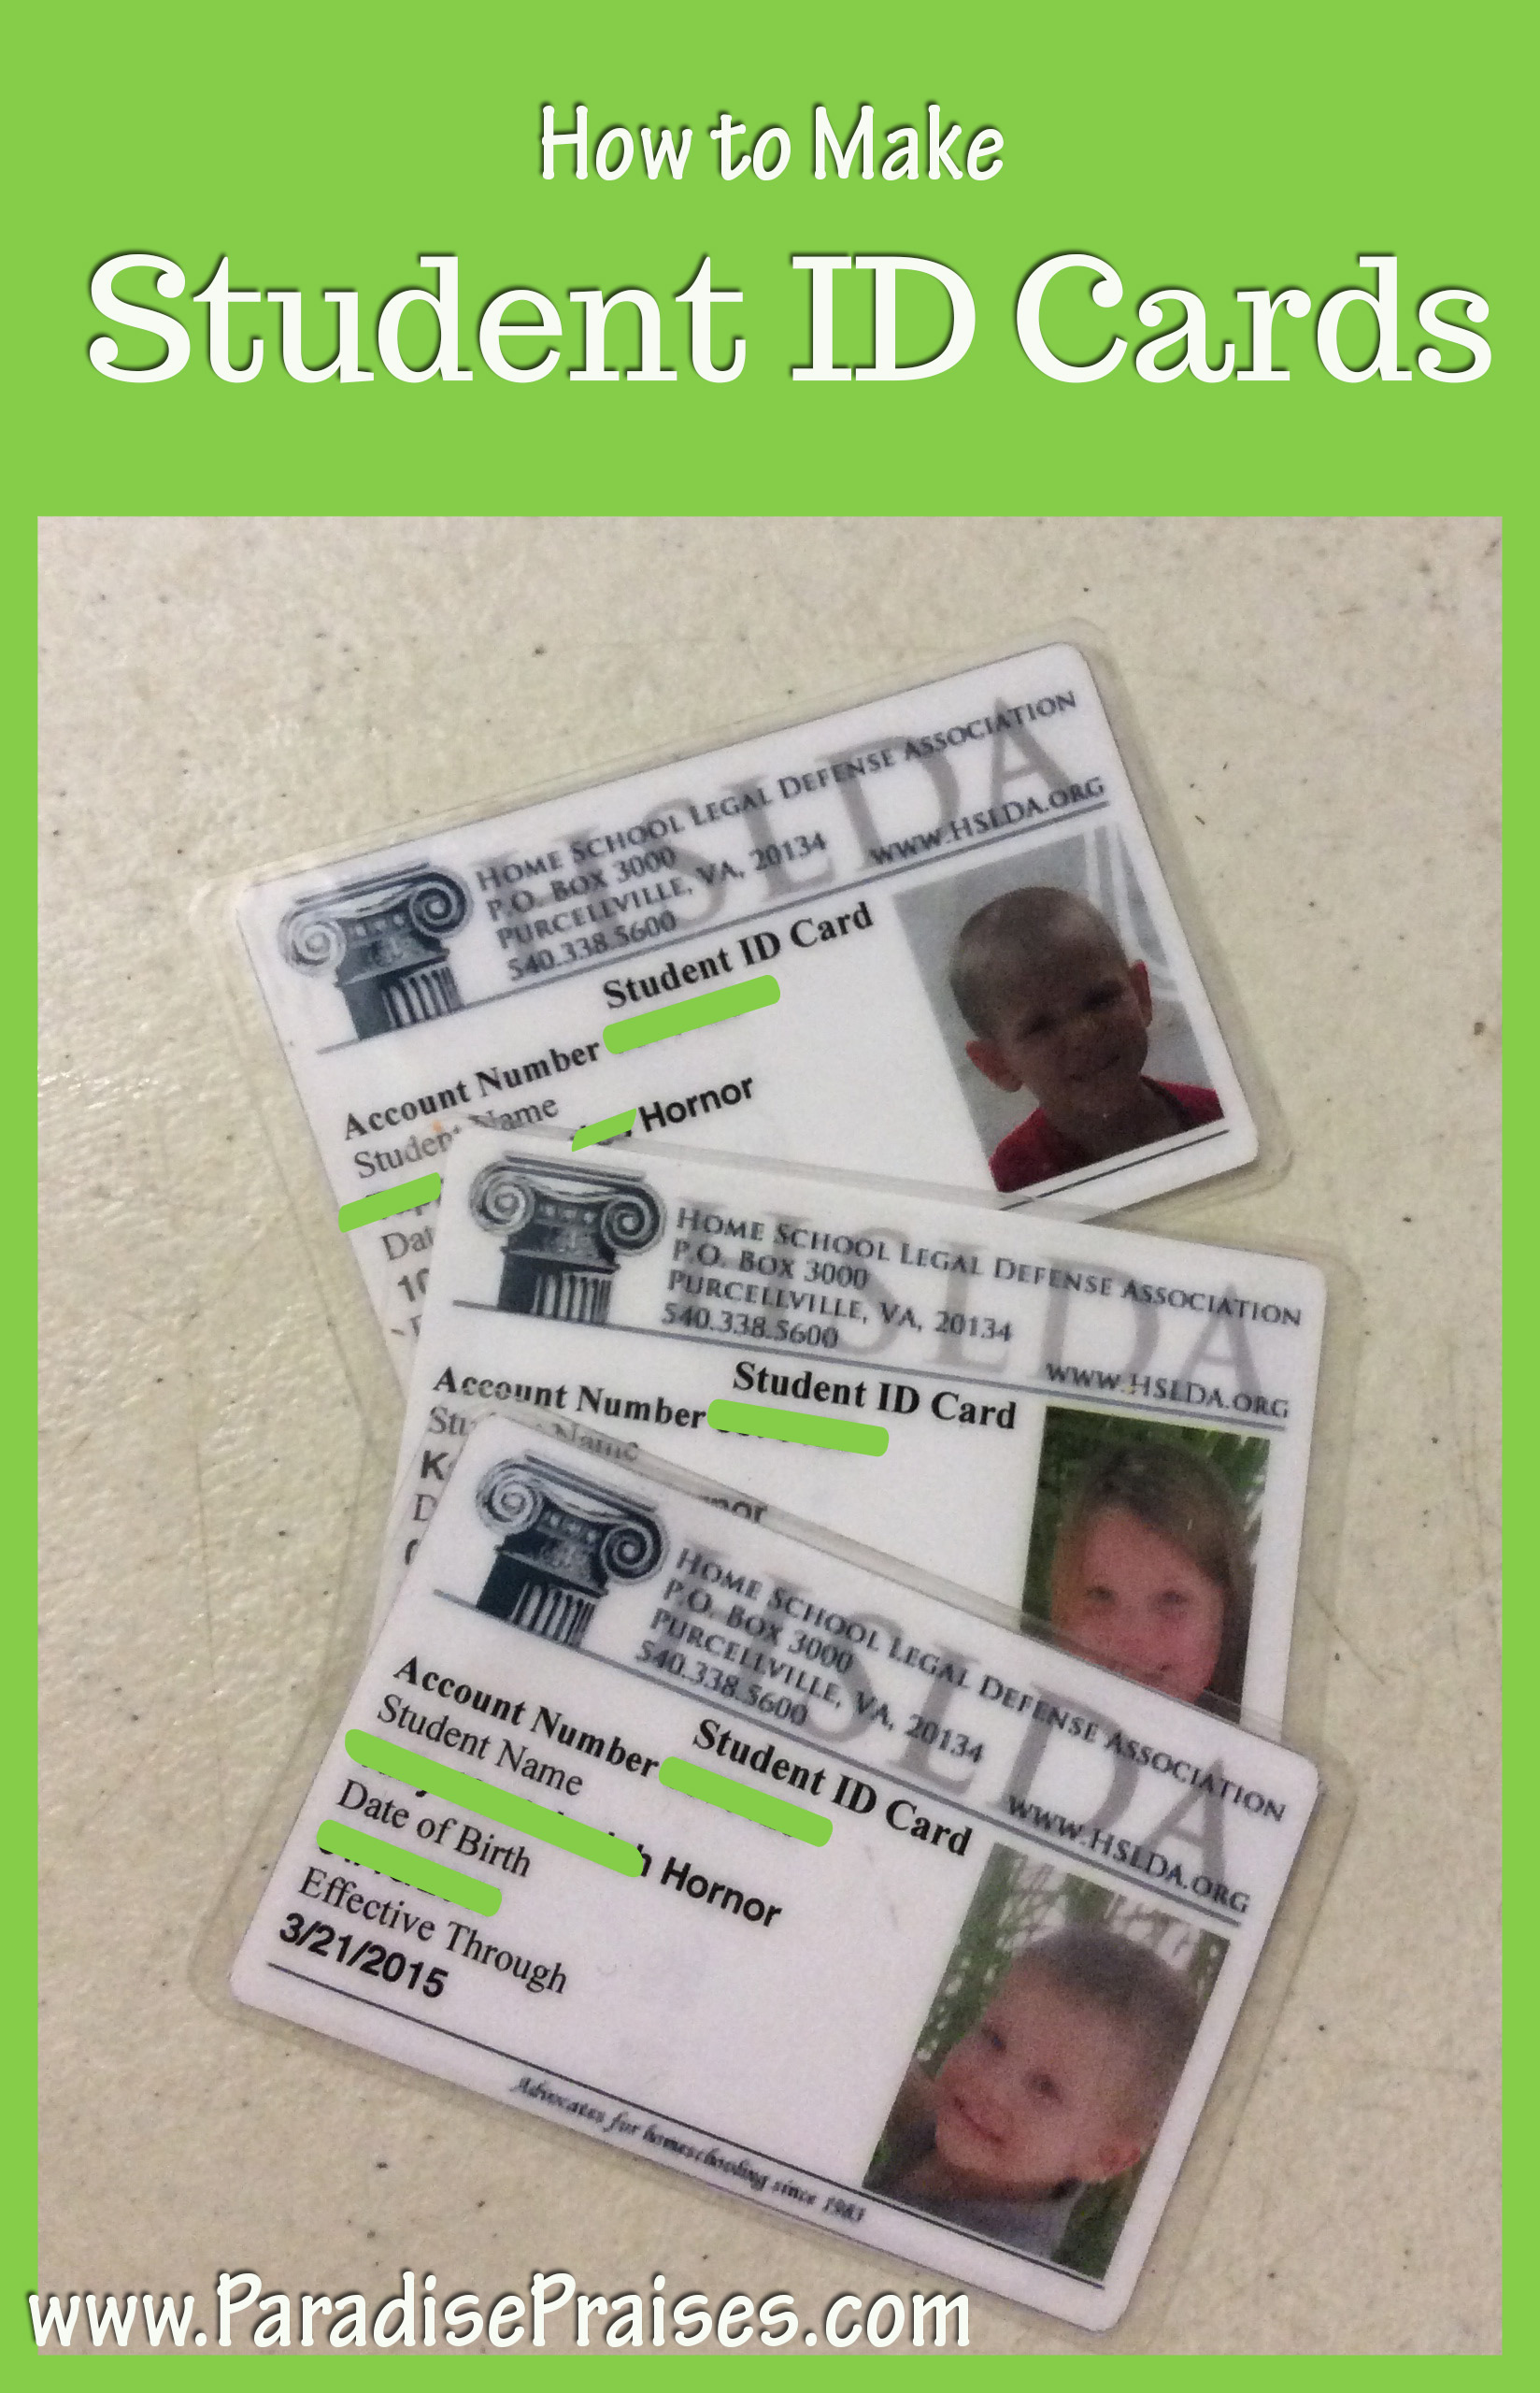 How to make student id cards - photo#17